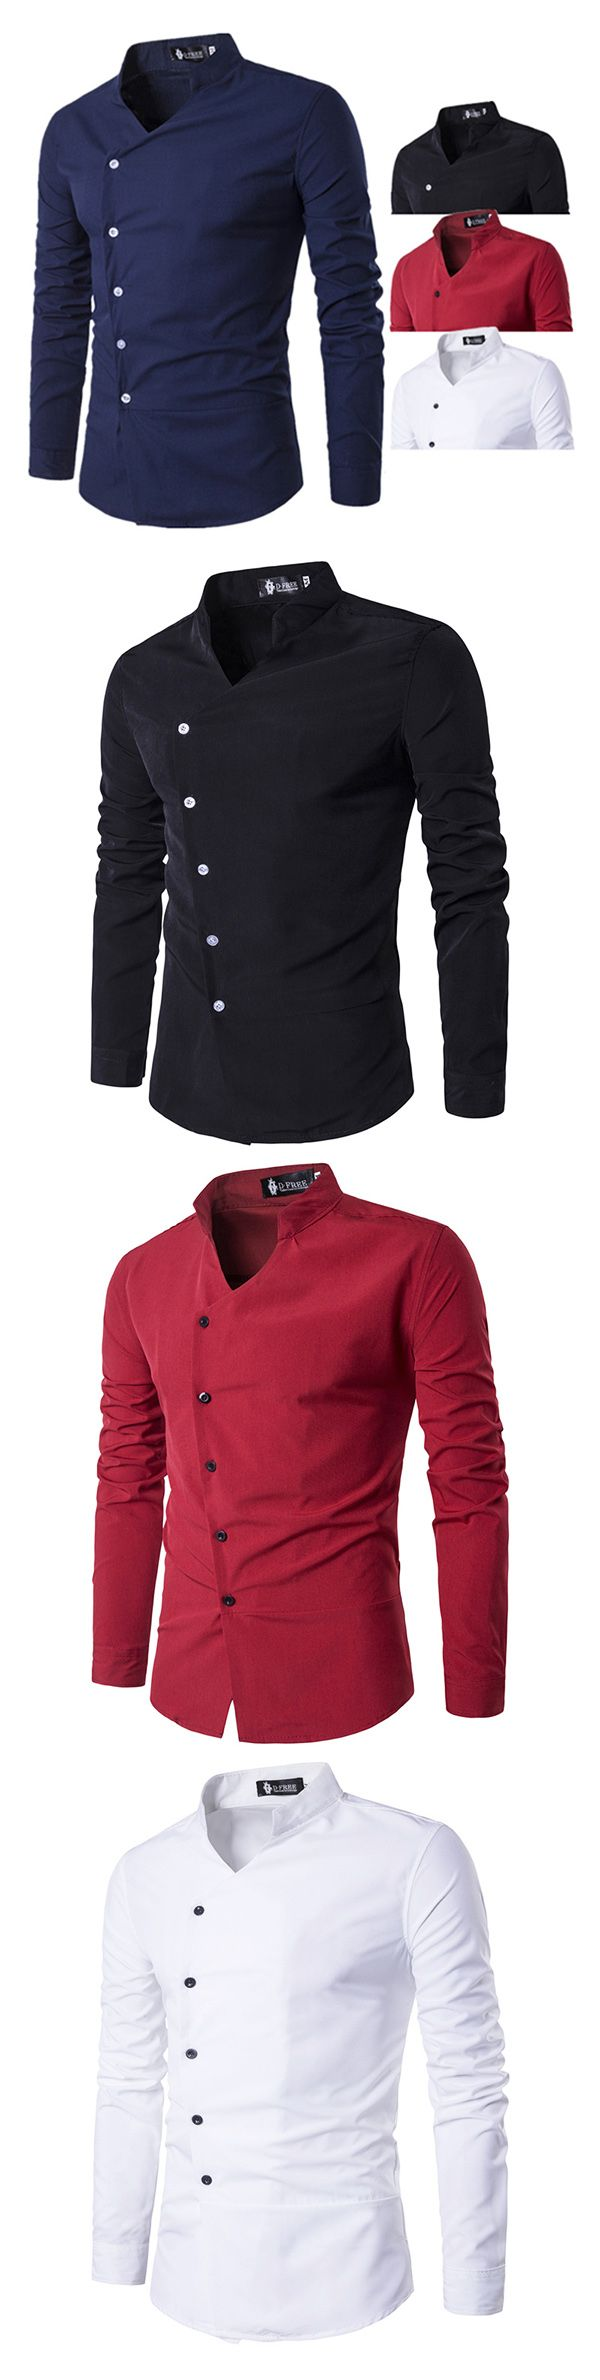 US$16.33 (47% OFF) Slim Fit Designer Dress Shirt for Men: Long Sleeve /  Patchwork Bust Plaid Pocket / Turn Down Collar